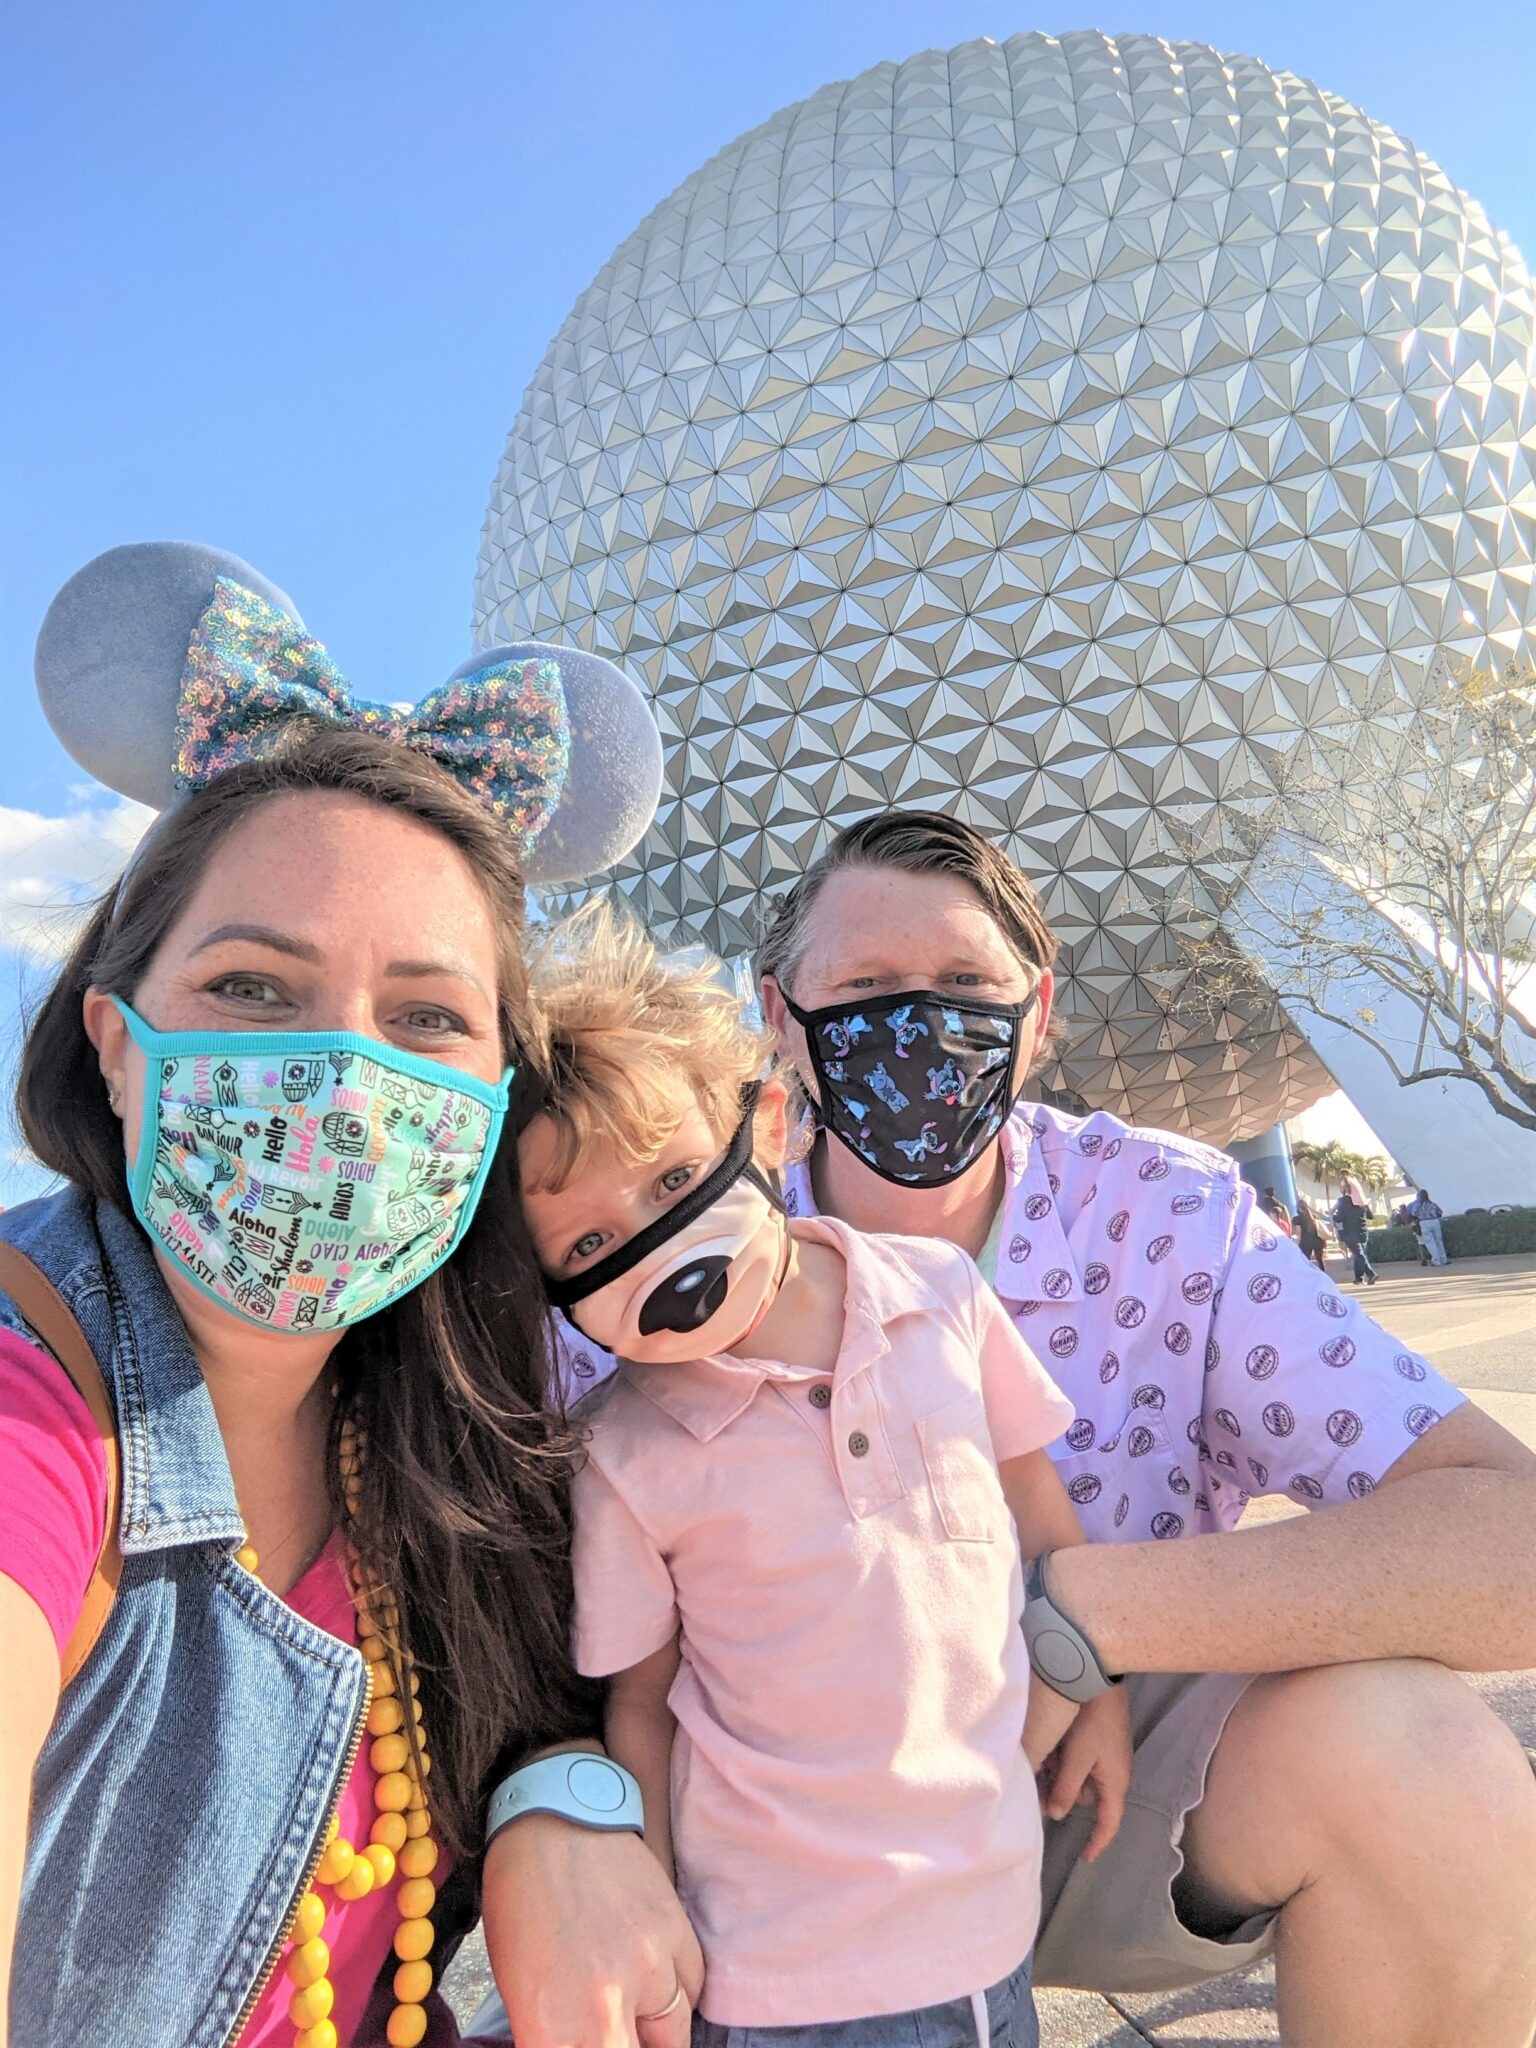 Best Spots for Photos at Walt Disney World All Things with Purpose Sarah Lemp 4